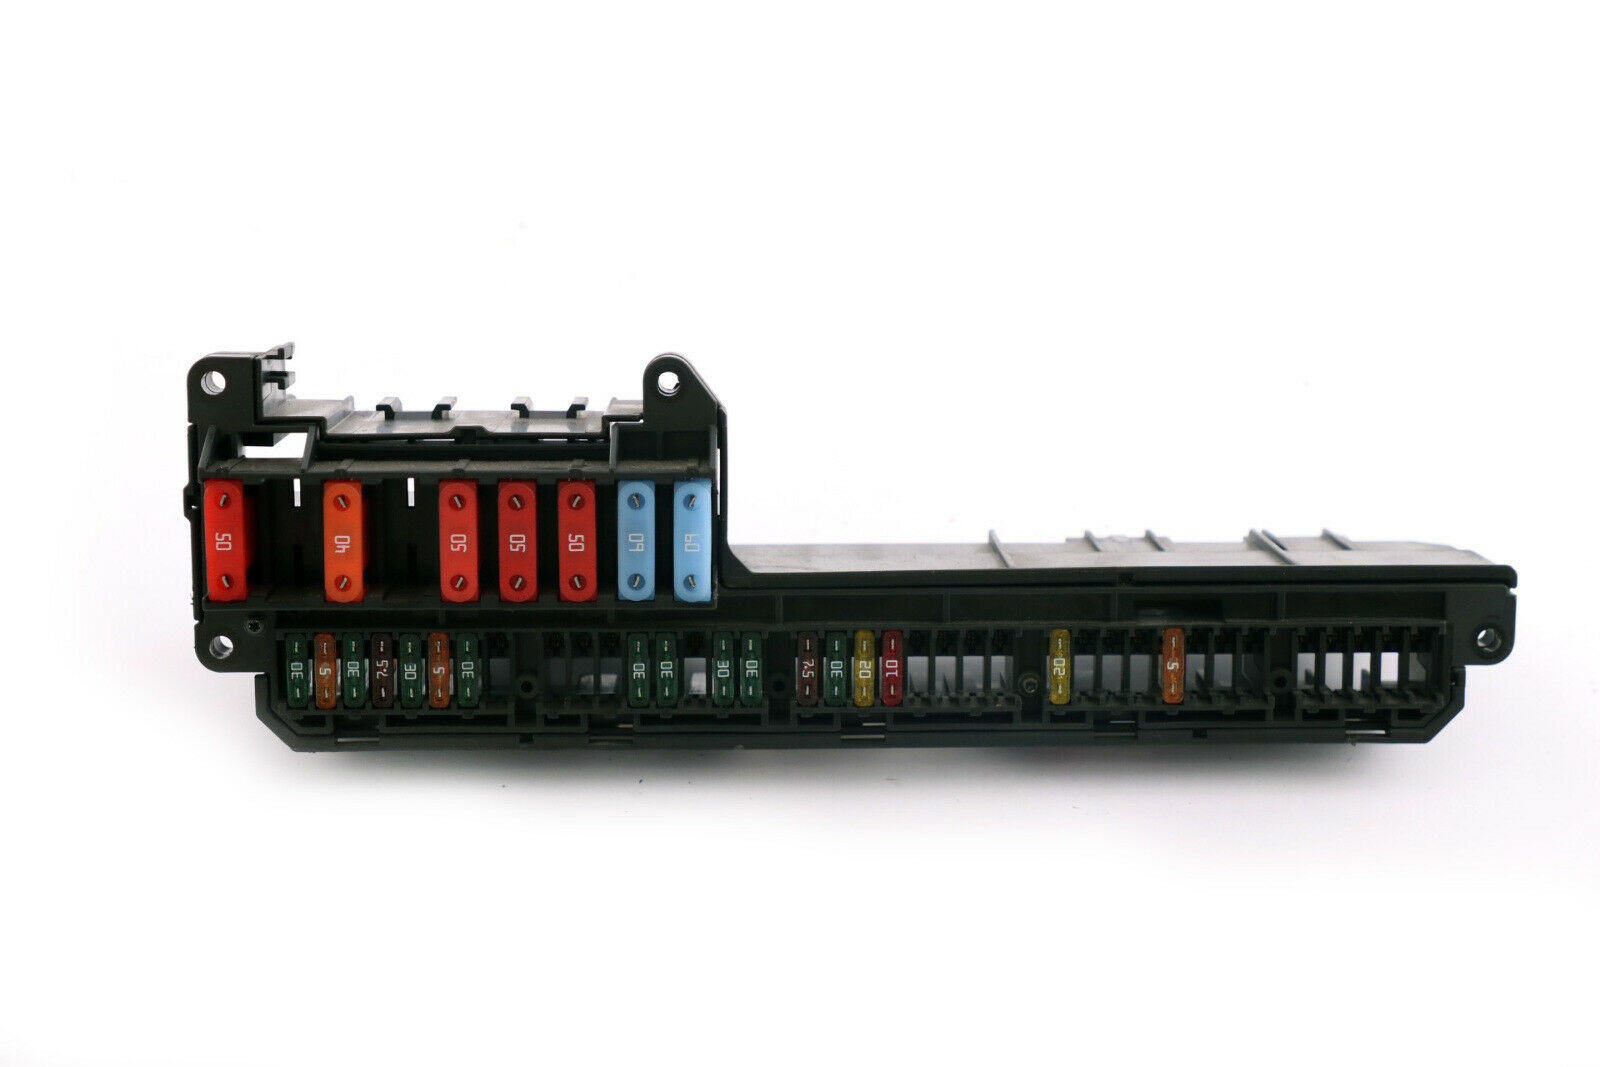 Bmw 5 6 Series E60 E61 E63 E64 Power Distribution Electrical Fuse Box 6932452 1 Of 9only 3 Available